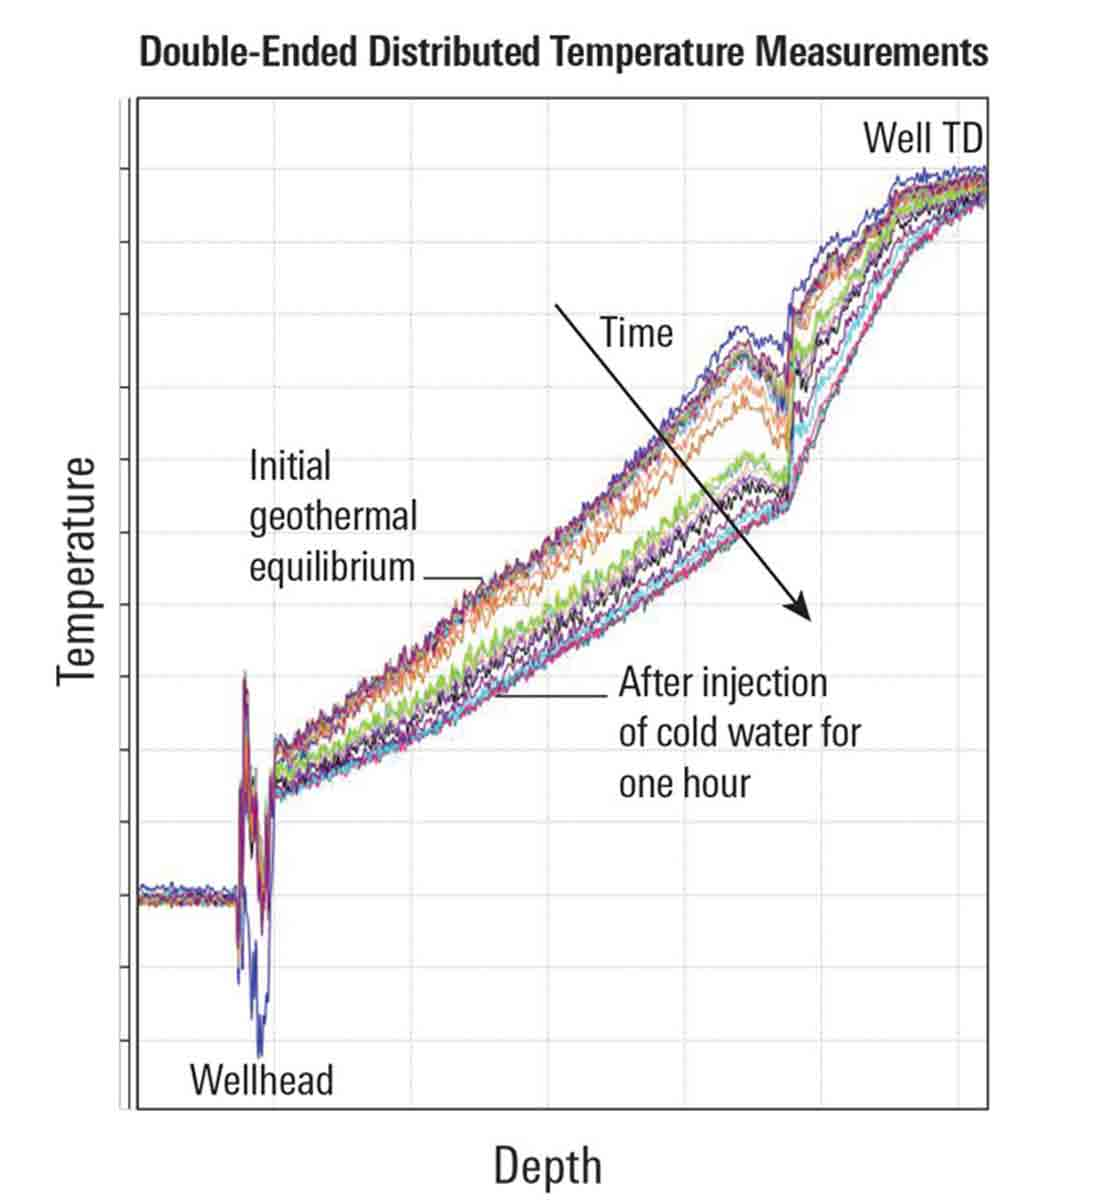 Injection of cold water for one hour produced a significant drop in temperature along the length of the fiber. The discontinuity toward the right side of the graph is caused by the transition from cased to open hole.